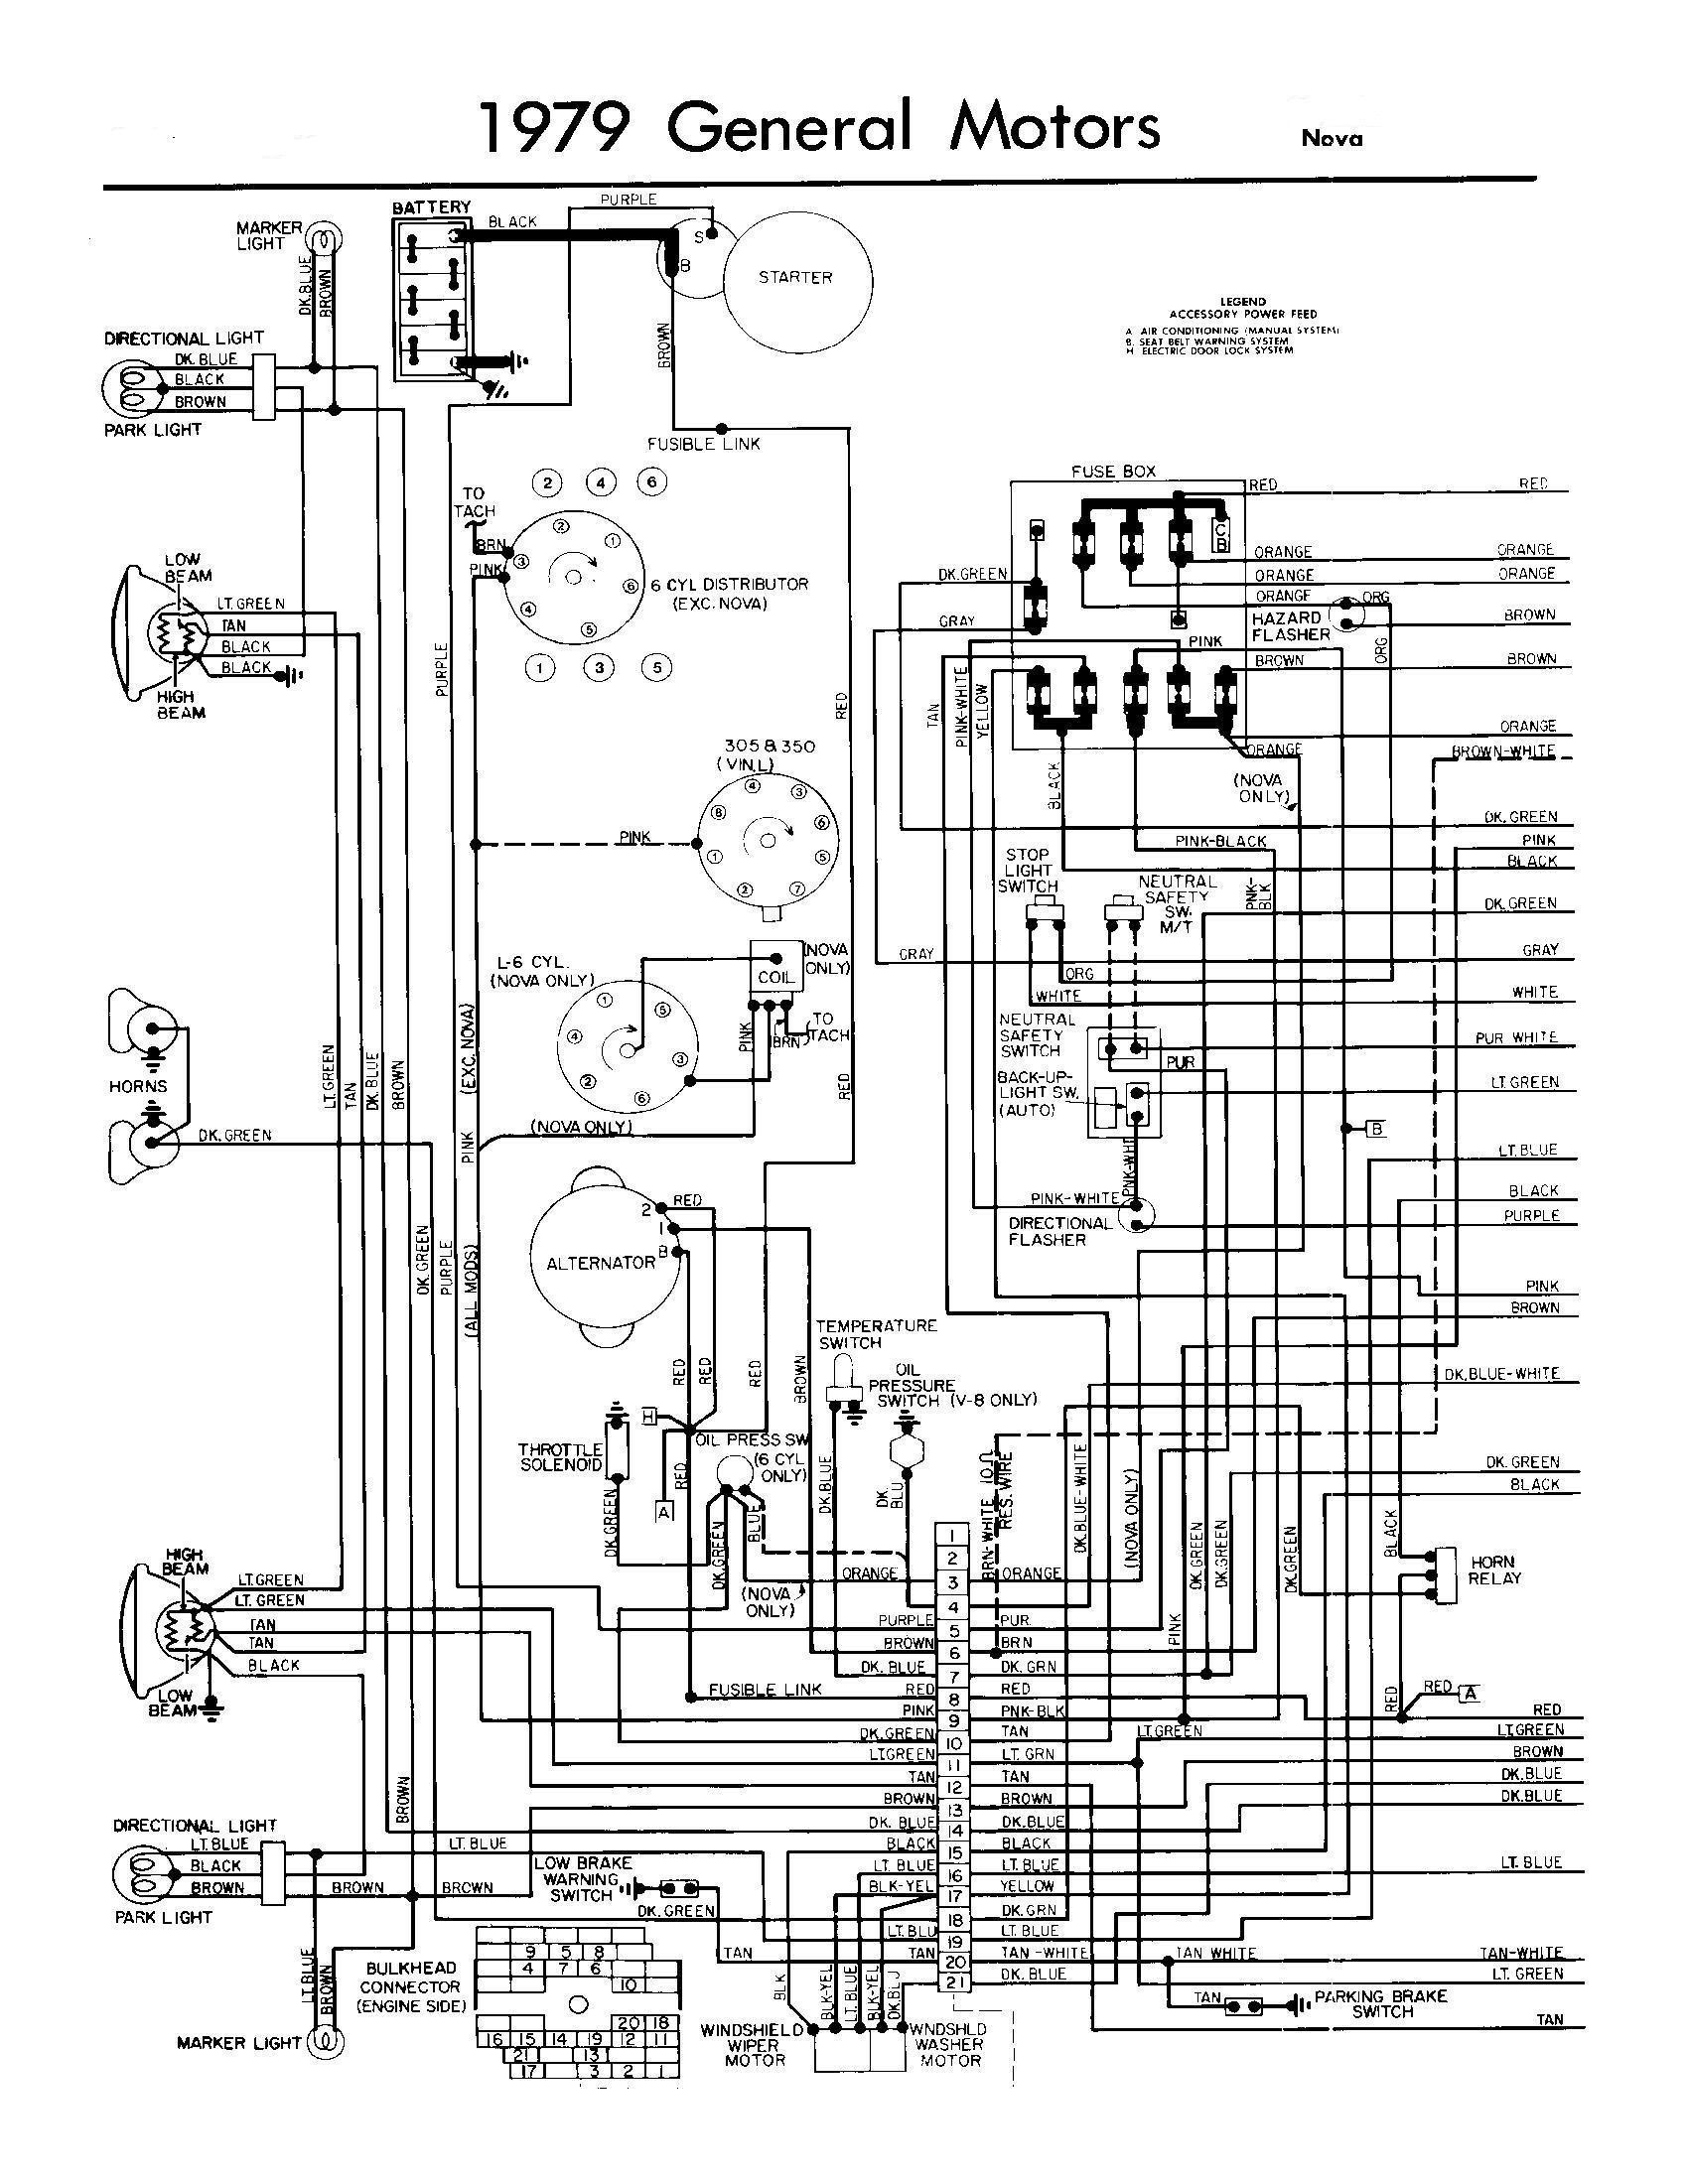 1985 chevy caprice fuse diagram wiring library  for 78 chevy caprice wiring diagrams #3